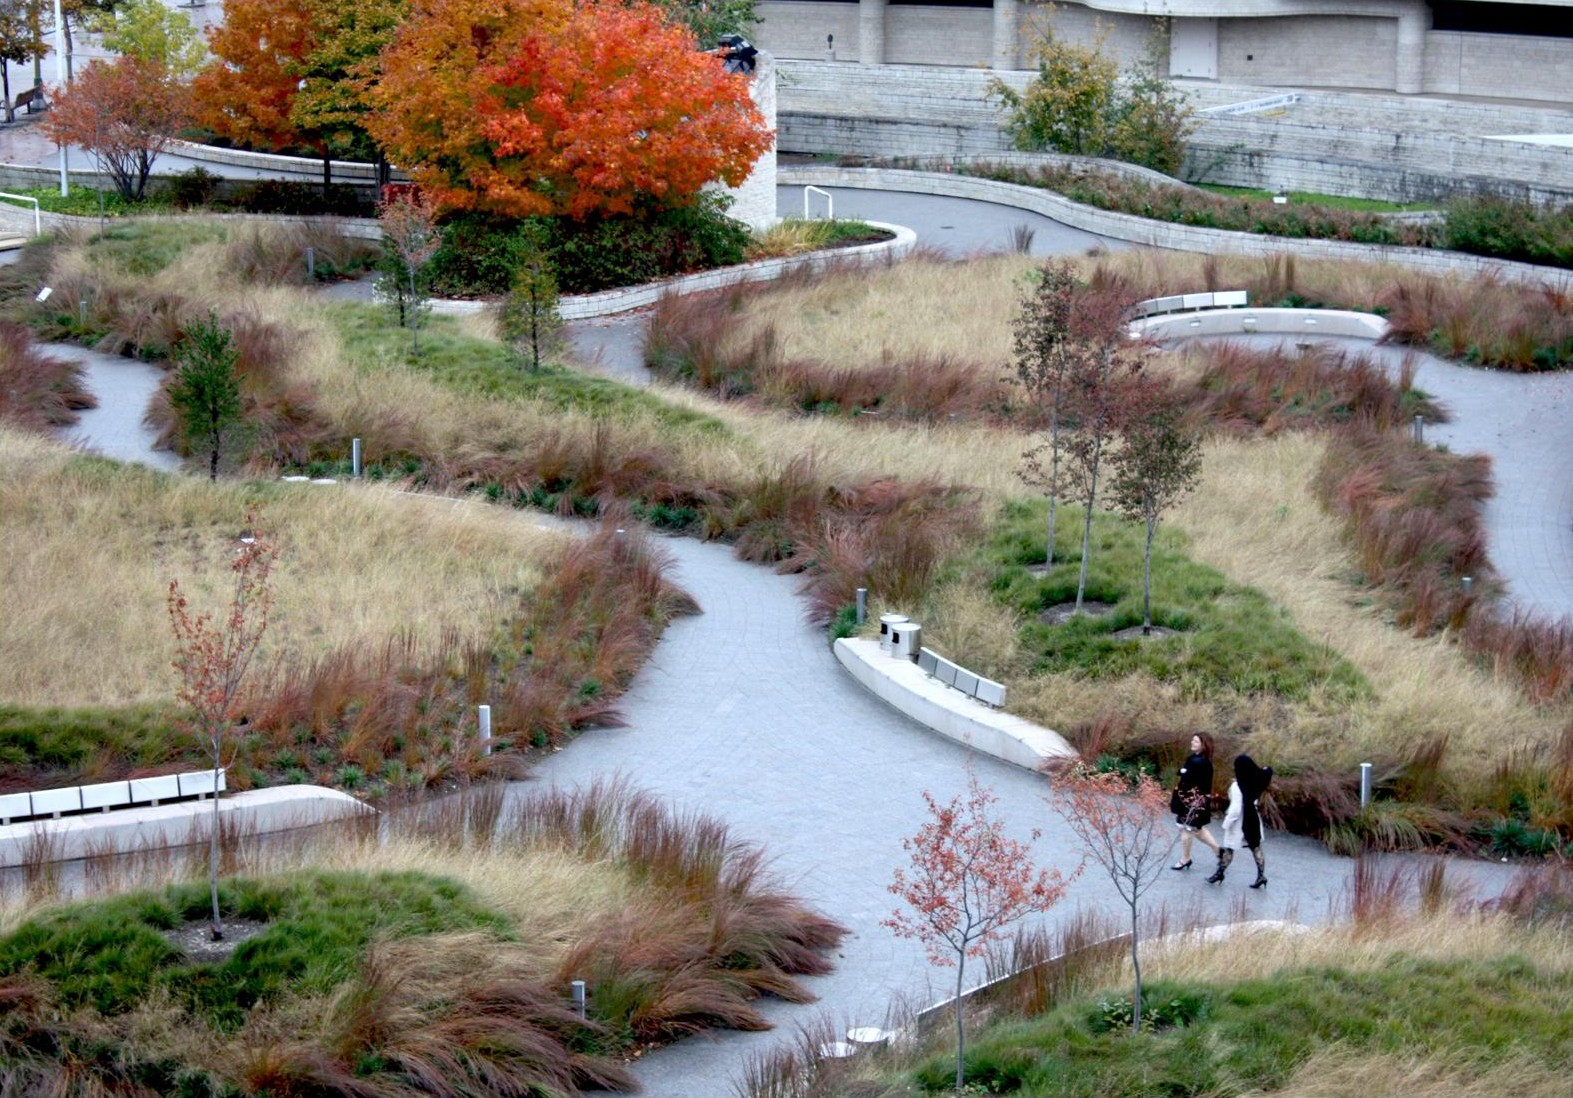 Urban prairie transformation of the plaza from hardscape for Canadian society of landscape architects